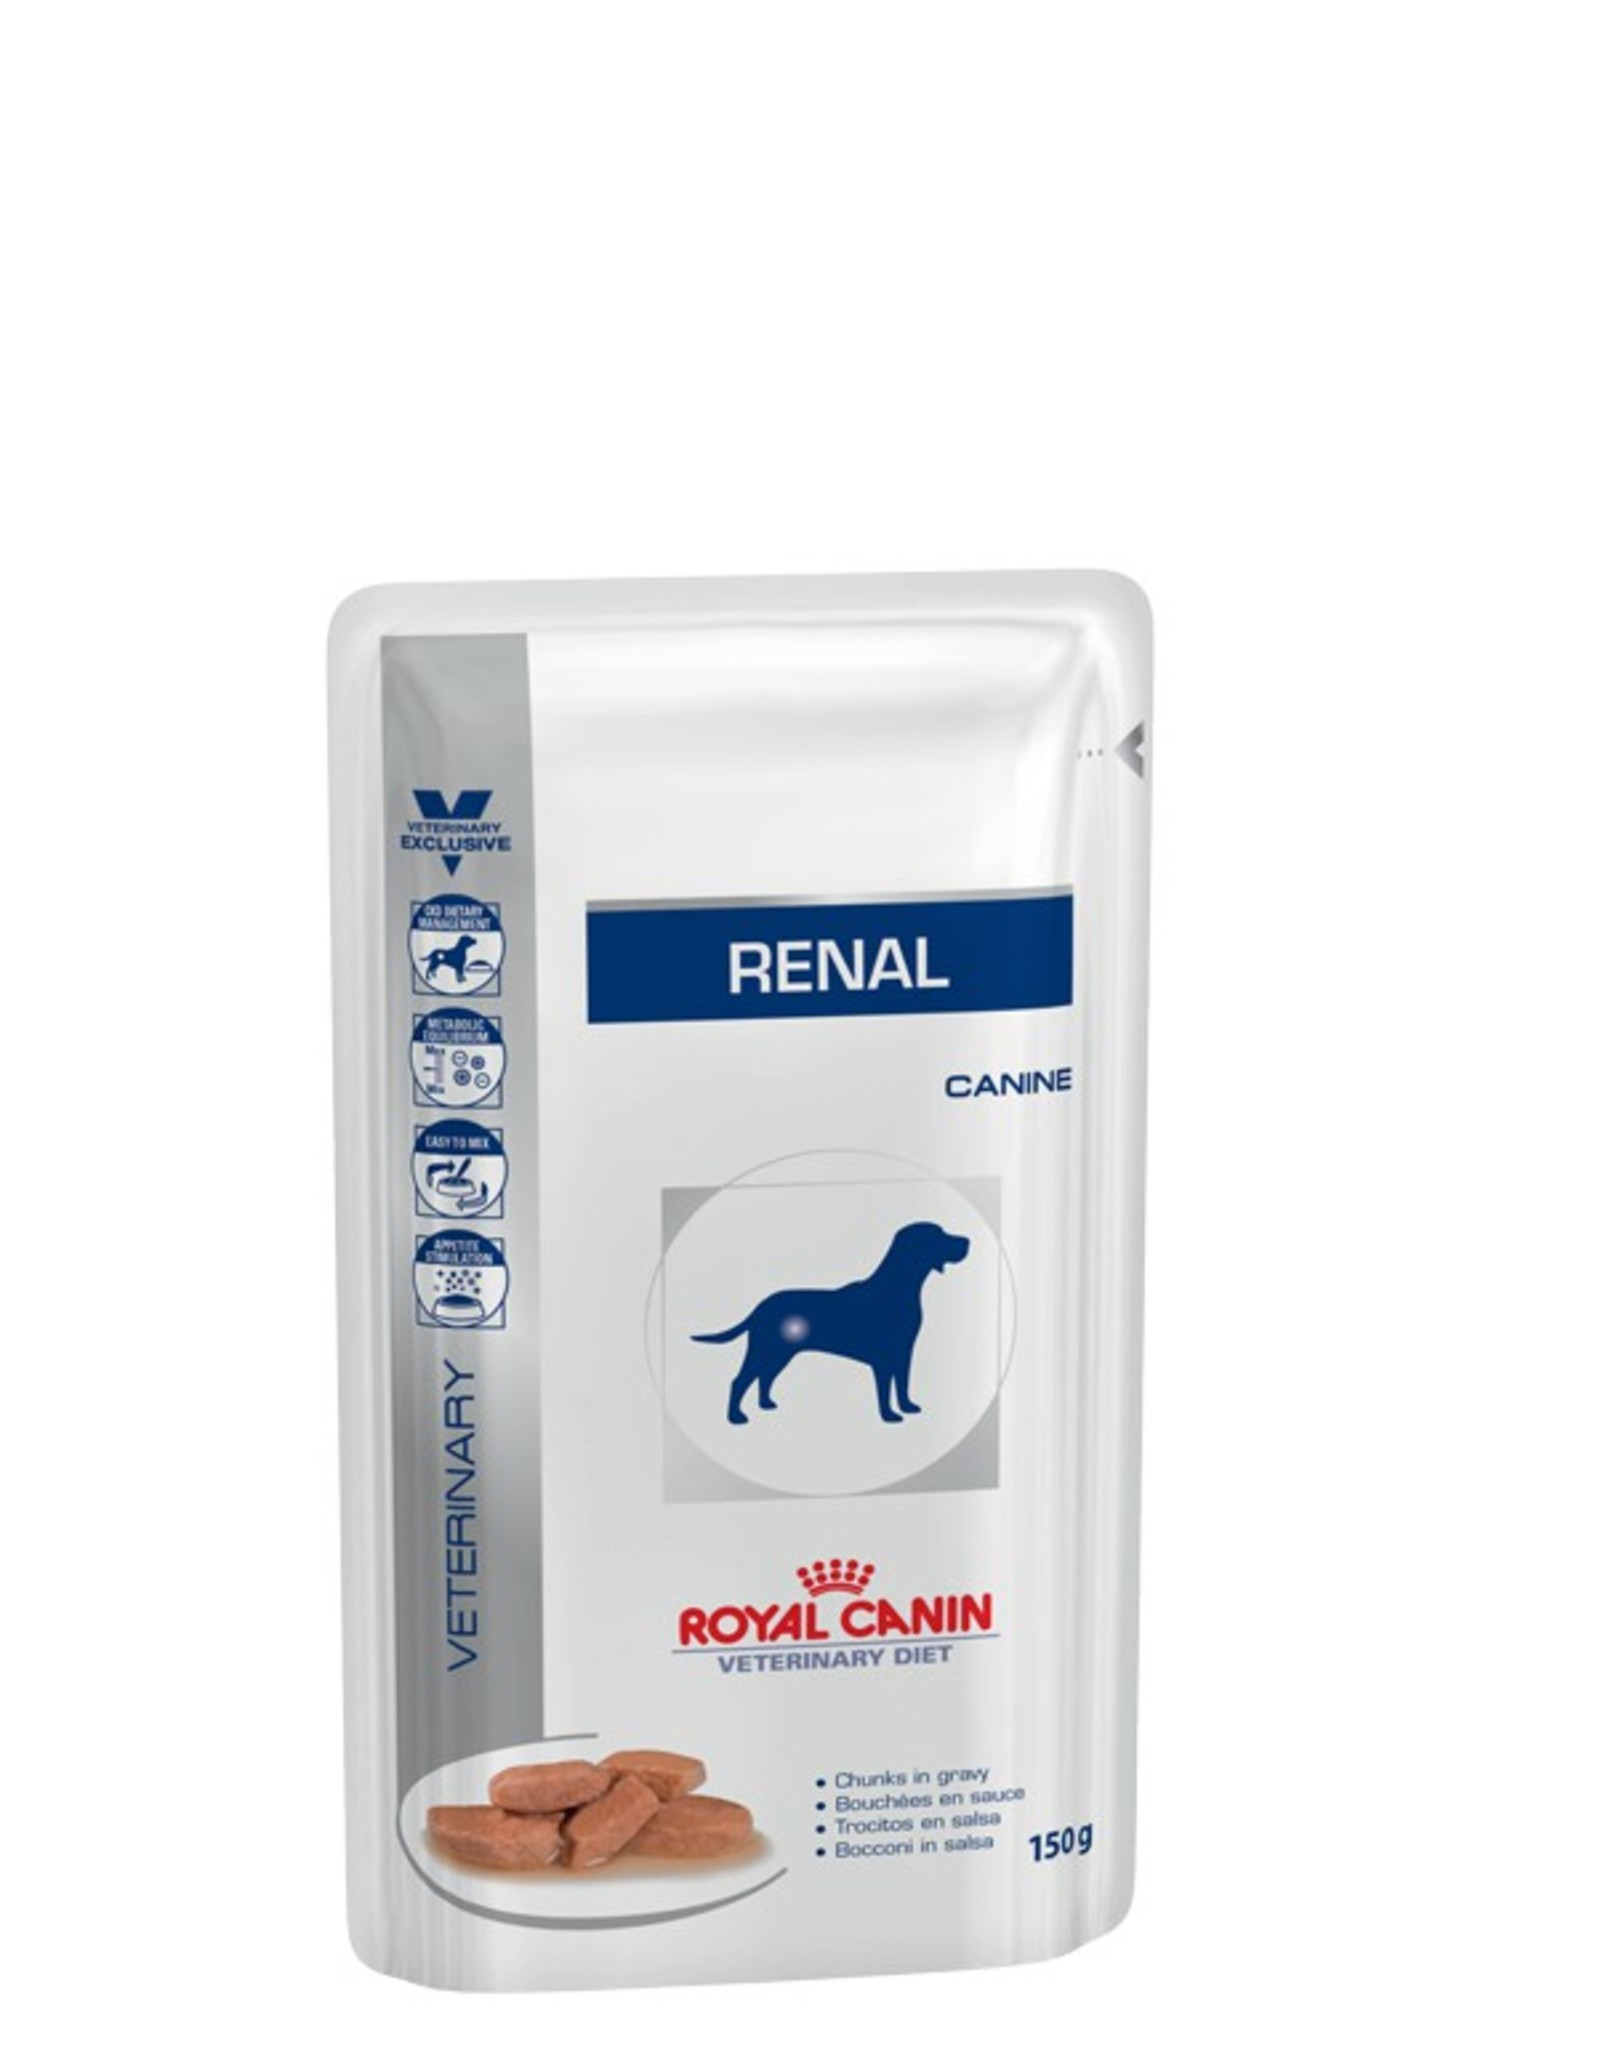 Royal Canin Vdiet Canine Renal Cig Pouch 10x150g